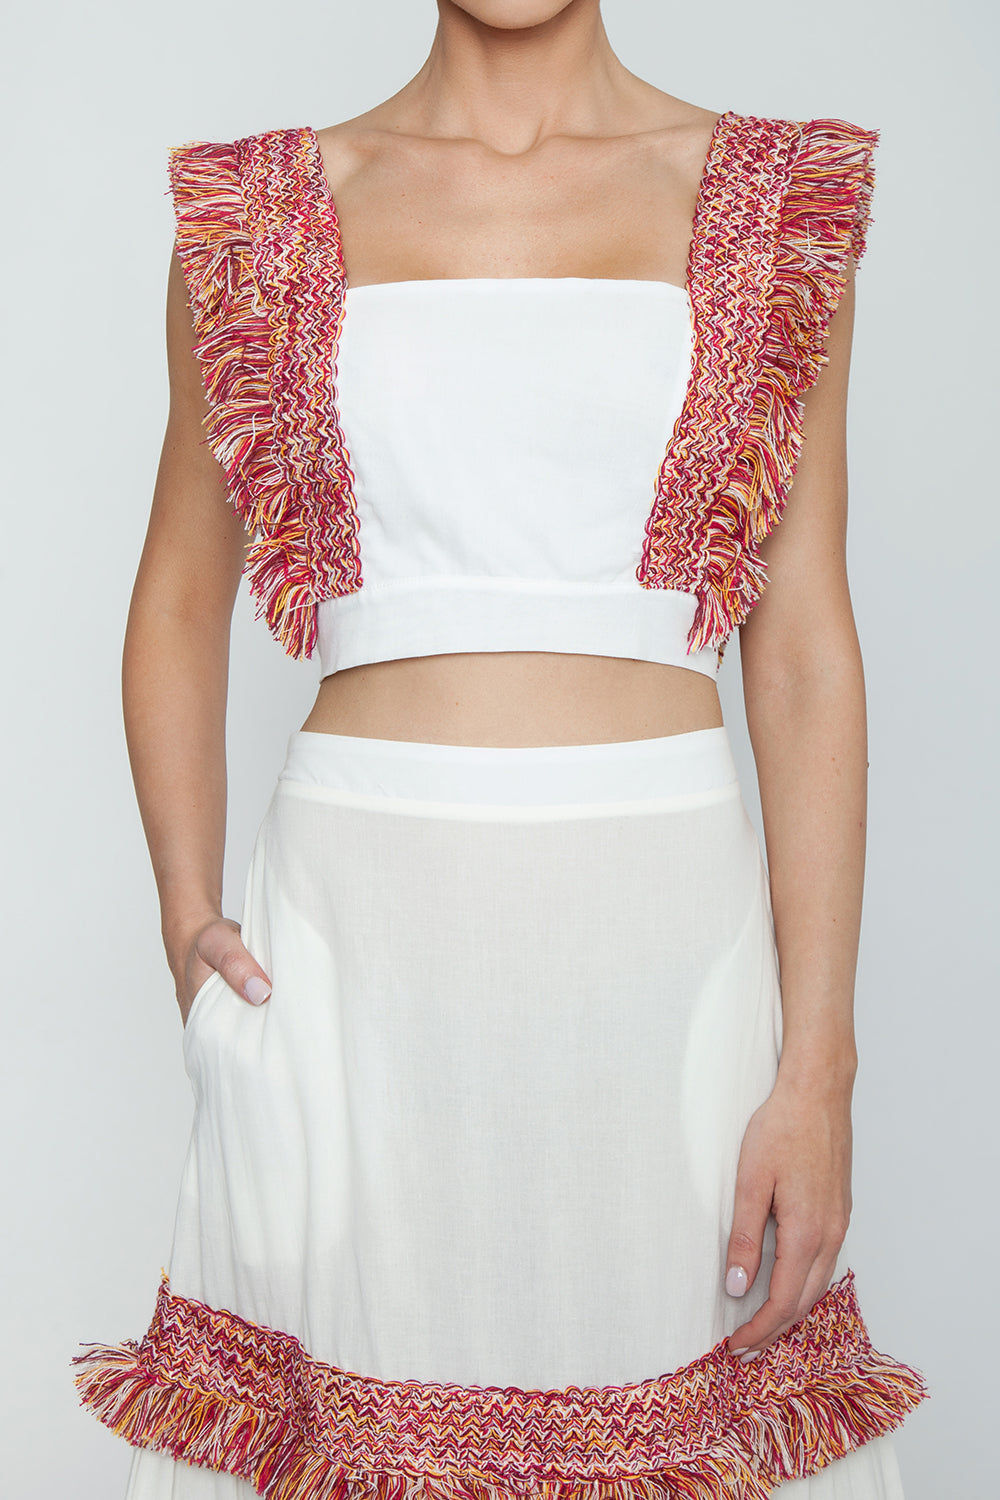 CLUBE BOSSA Pisan Long Fringe Skirt - White & Jazzy Fringes Red Skirt | White & Jazzy Fringes Red| Clube Bossa Pisan Long Fringe Skirt - White & Jazzy Fringes Red Long layered maxi skirt in white with warm-toned fringe tier detail. The bold red and yellow toned fringe pops off the contrasting clean white of this skirt. The high waisted Detail View